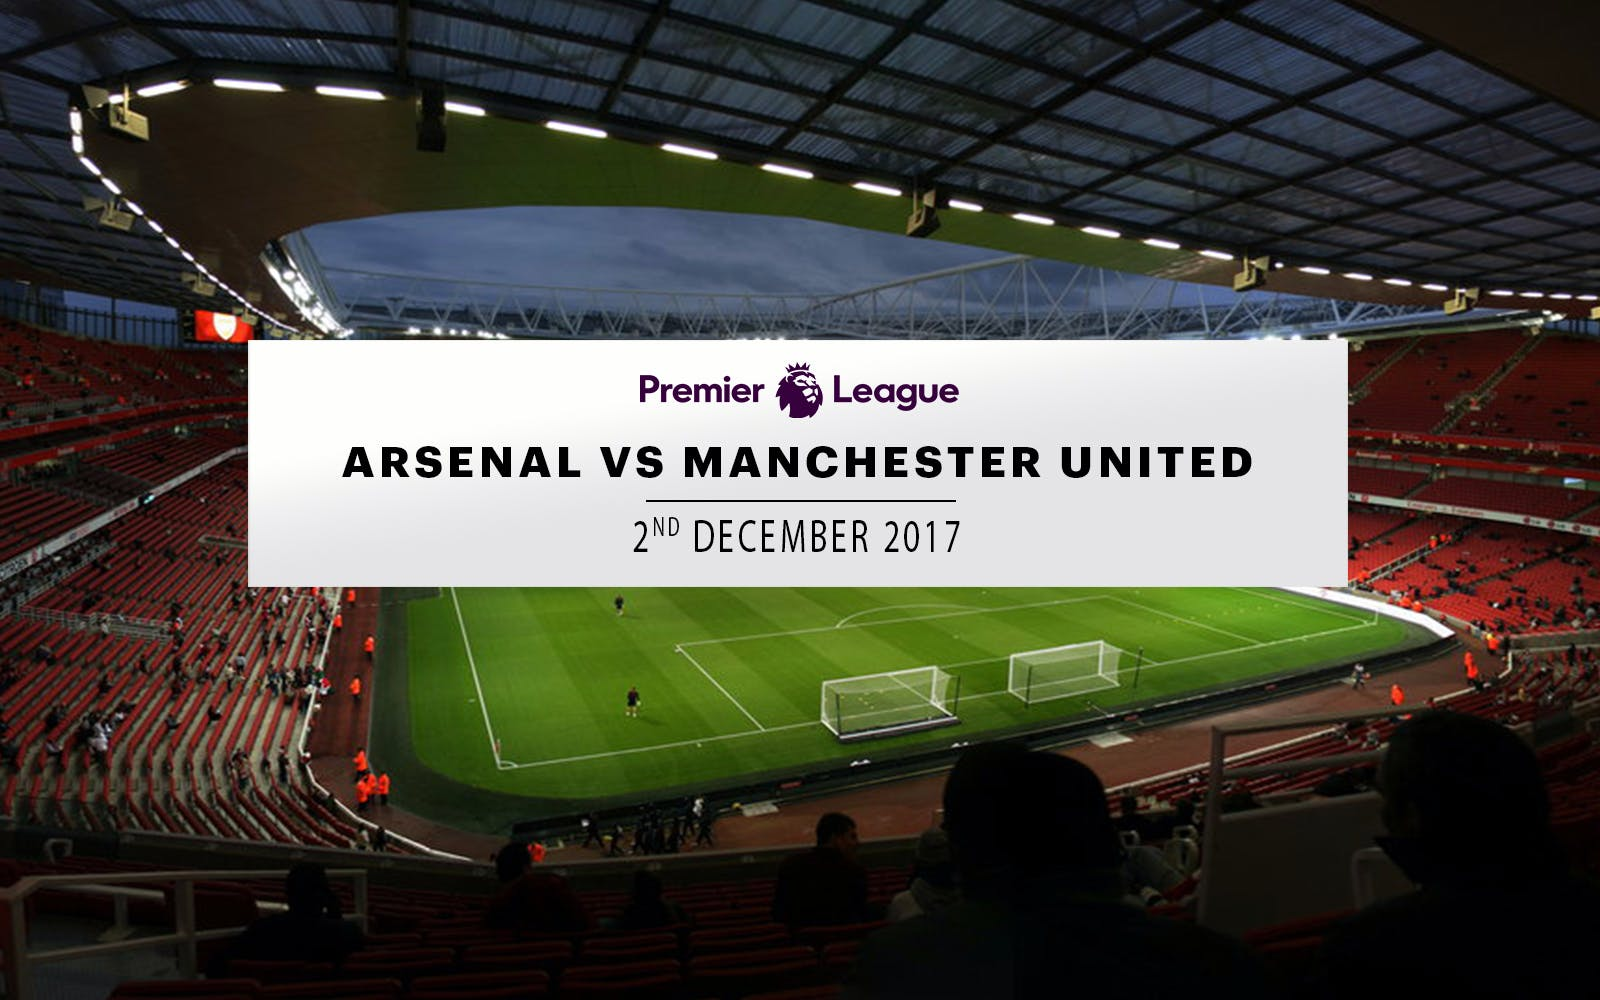 arsenal vs manchester united - 2nd december 2017-1